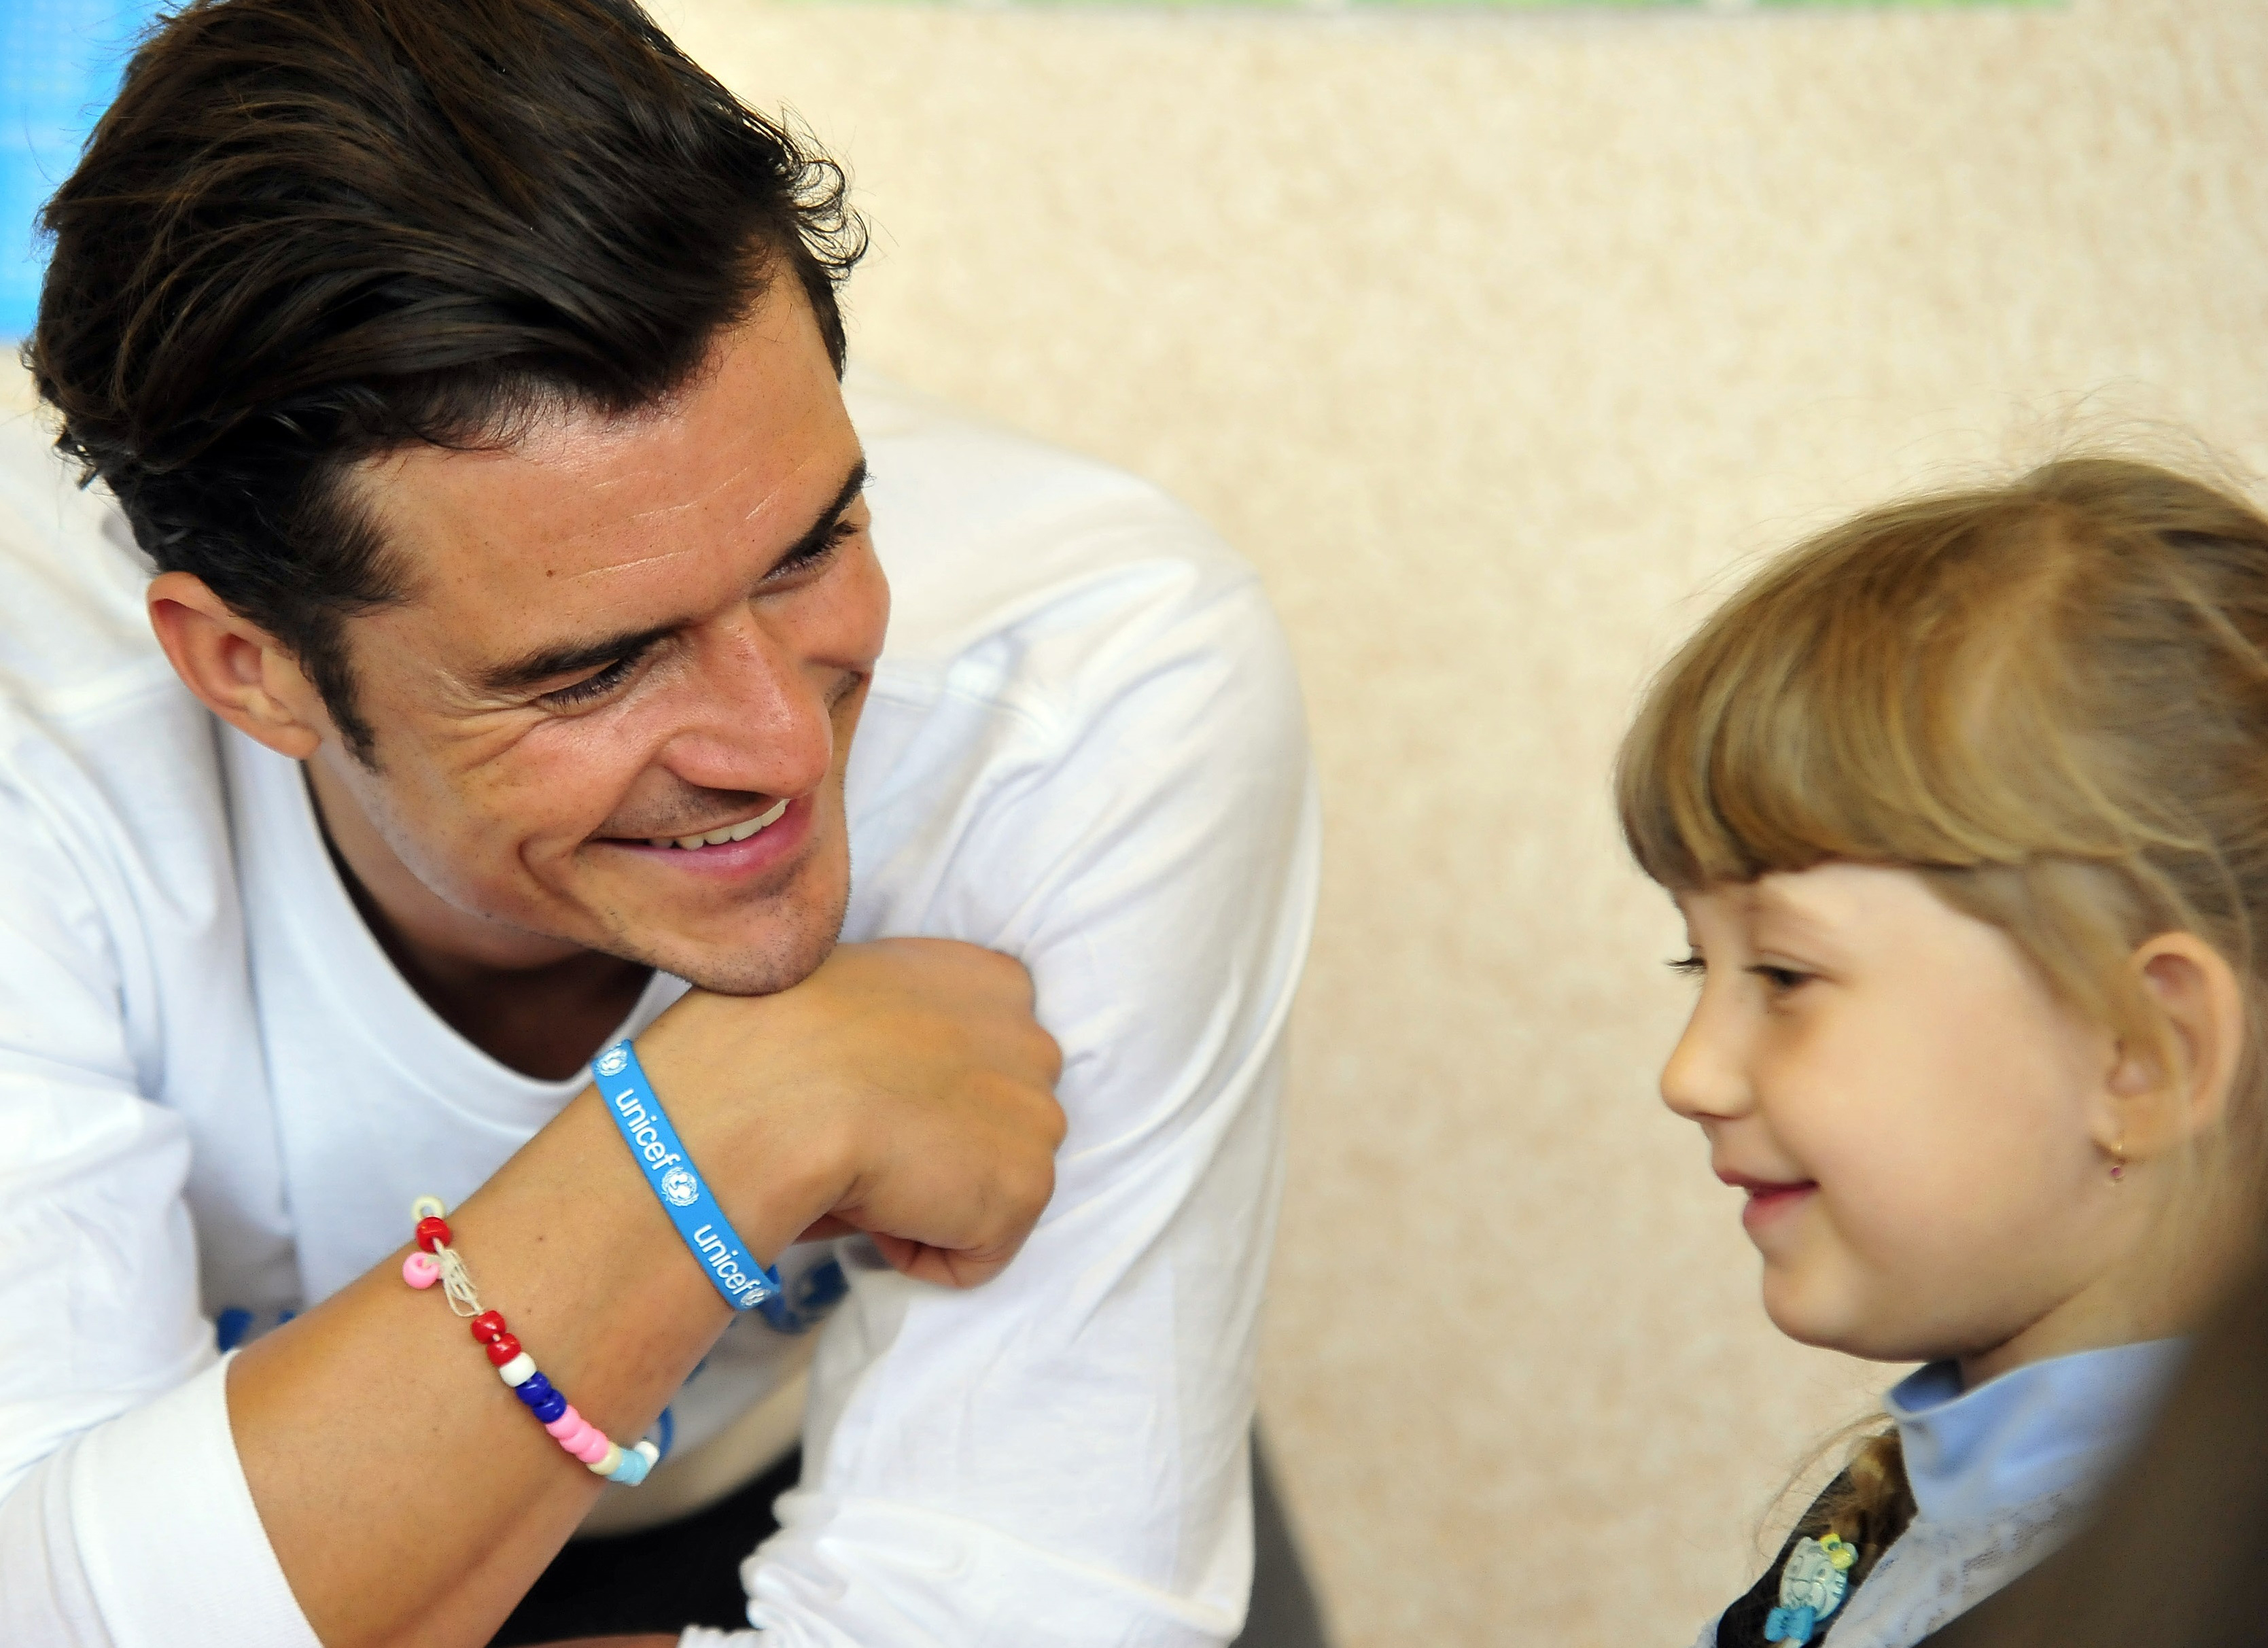 Orlando Bloom plays with pupils of a school in Slovyansk, Ukraine on April 27, 2016.